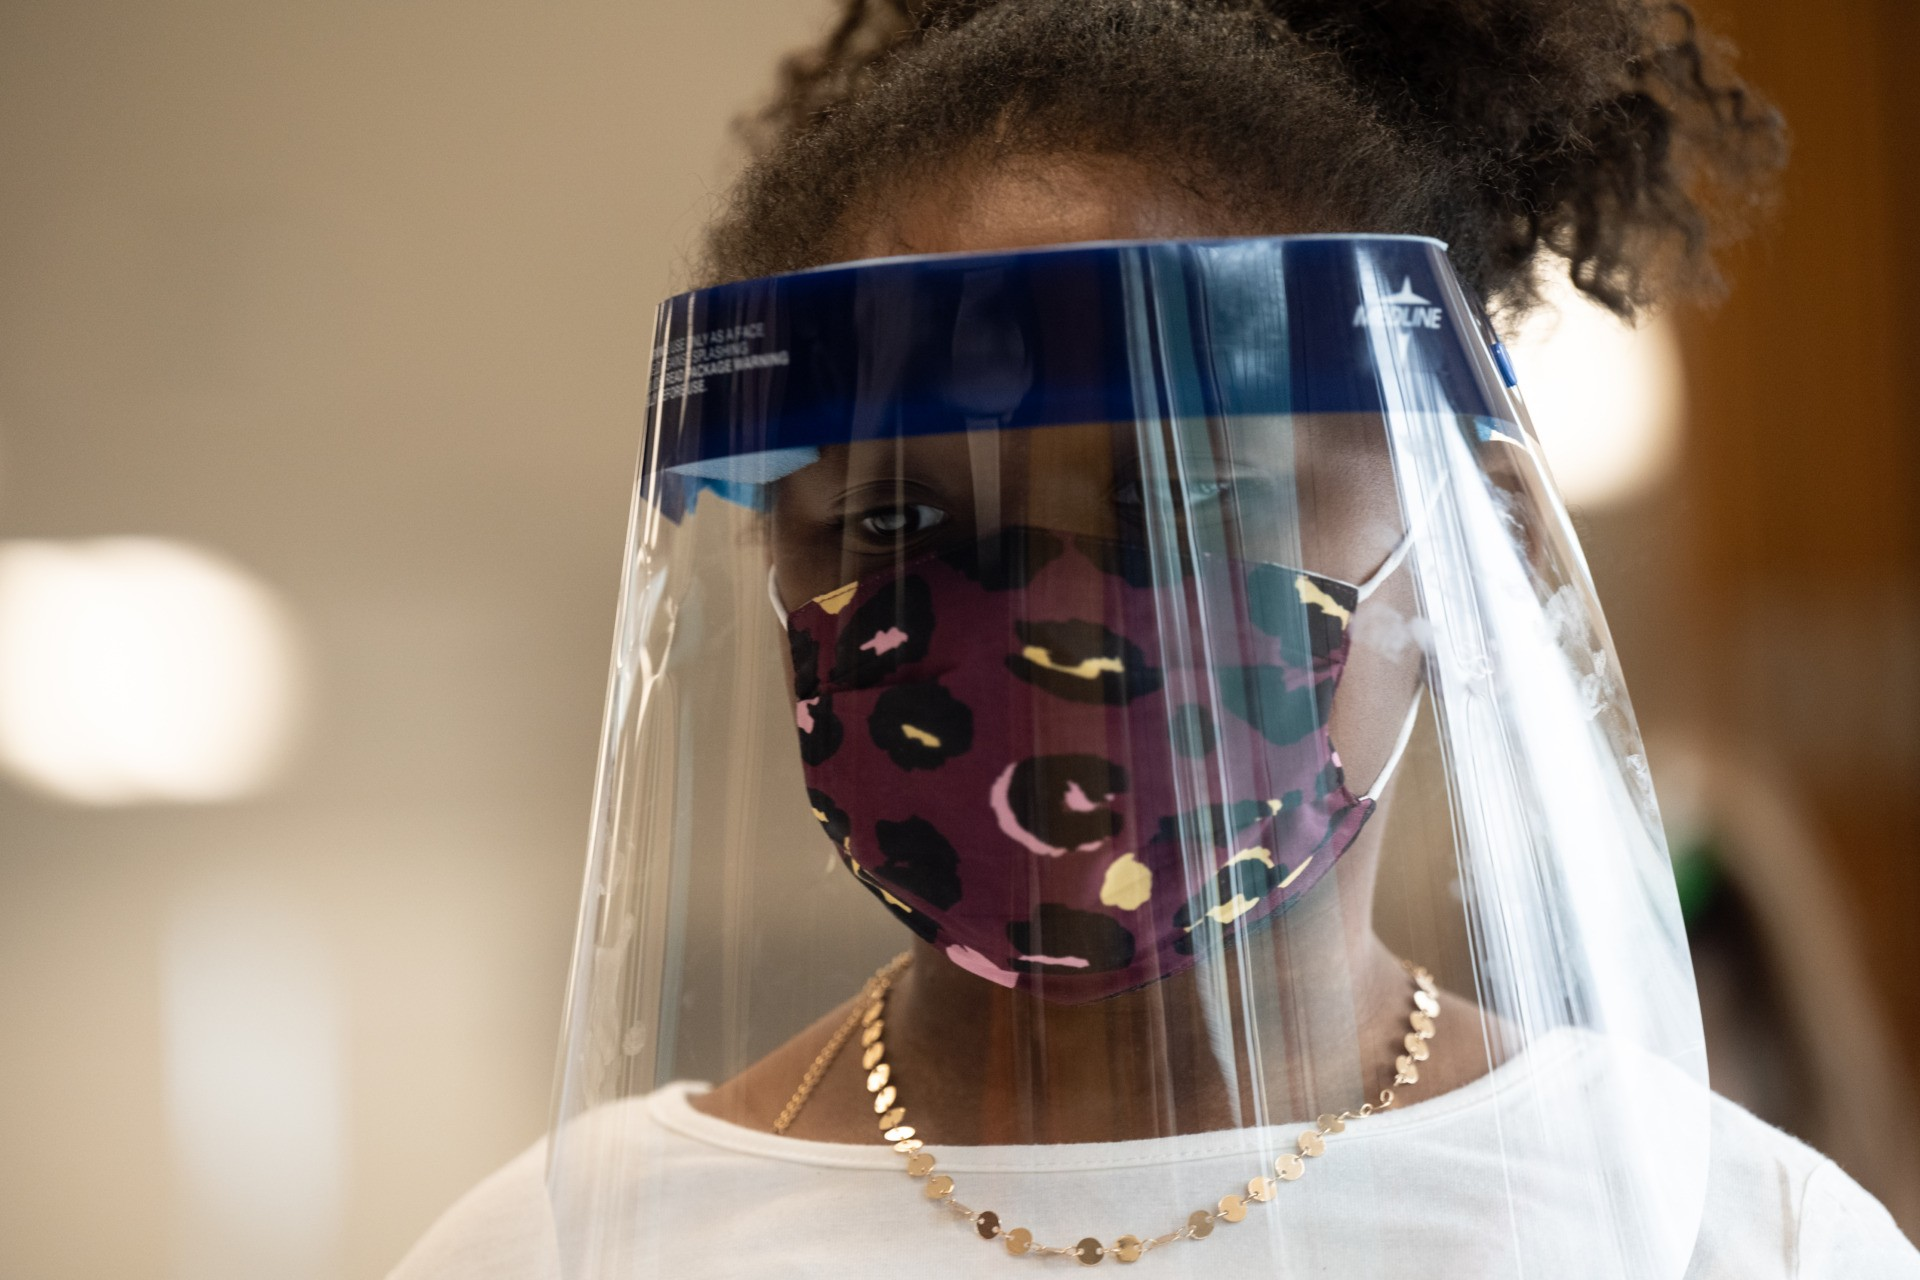 LOUISVILLE, KY - MARCH 17: A child wearing a face shield and mask stands in the cafeteria of Medora Elementary School on March 17, 2021 in Louisville, Kentucky. Today marks the reopening of Jefferson County Public Schools for in-person learning with new COVID-19 procedures in place. (Photo by Jon Cherry/Getty Images)